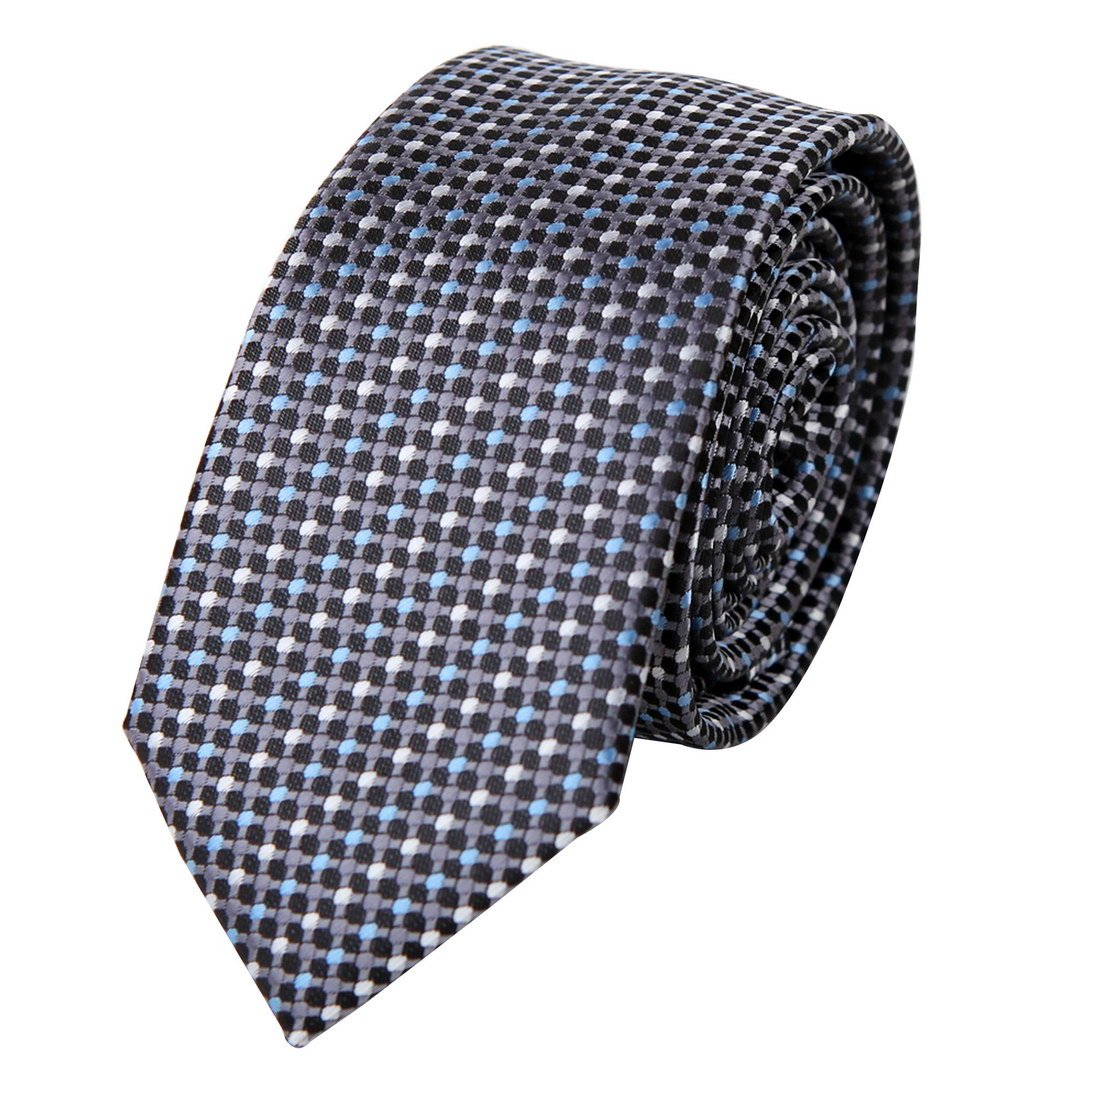 PS1036 Collection Accessories Grey Polka Dots Dad Presents Silk Skinny Ties Fine Valentines Day Set By Epoint